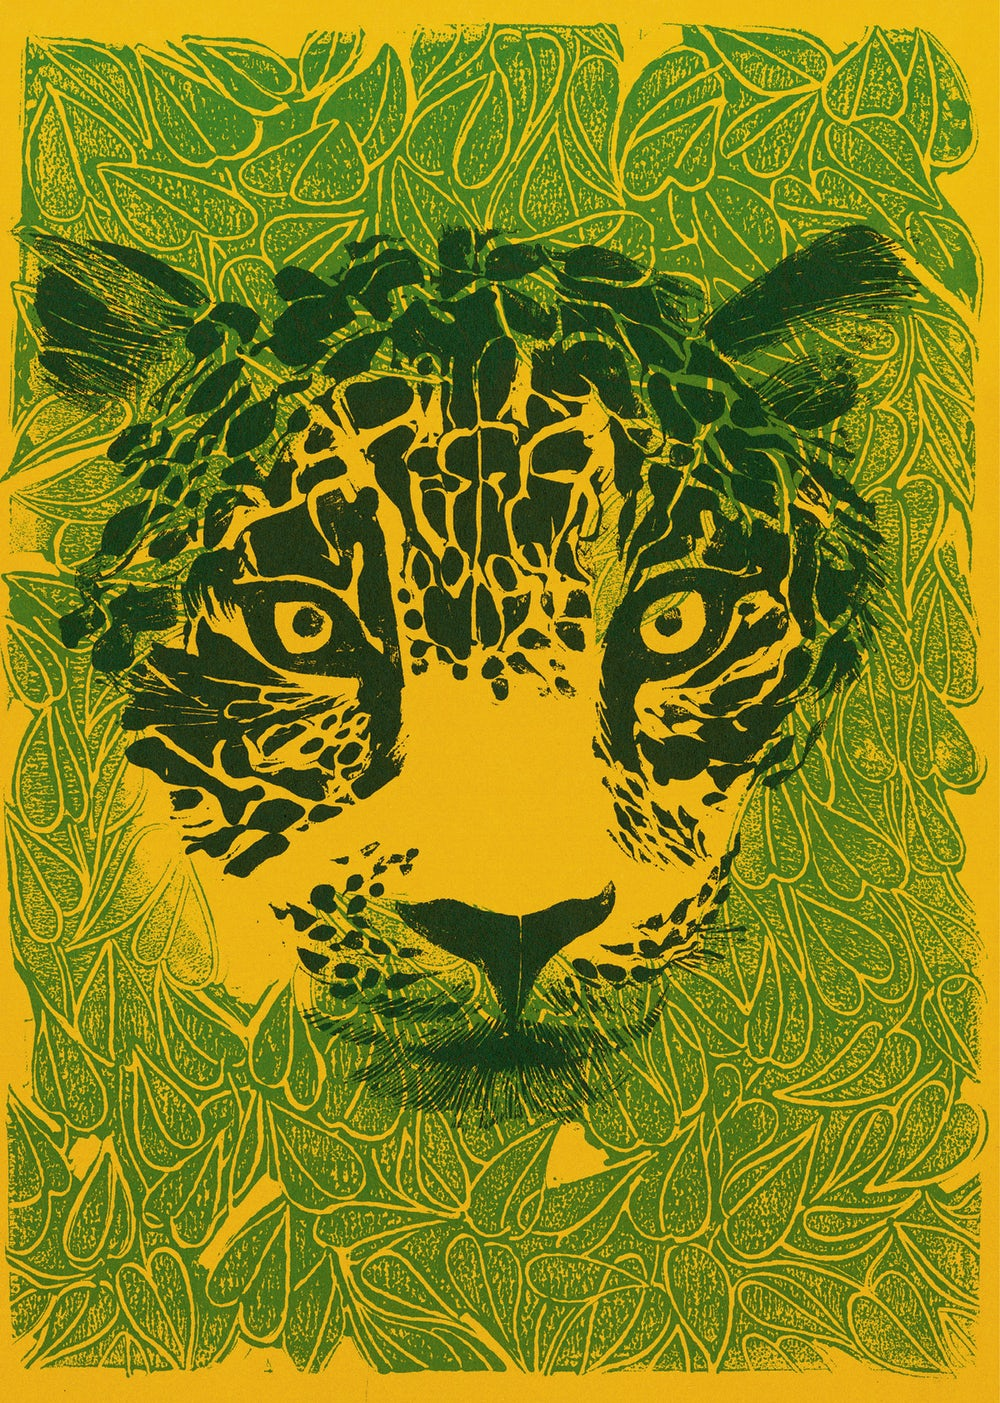 An illustration of a jaguar's face from The Jungle by Helen Borten